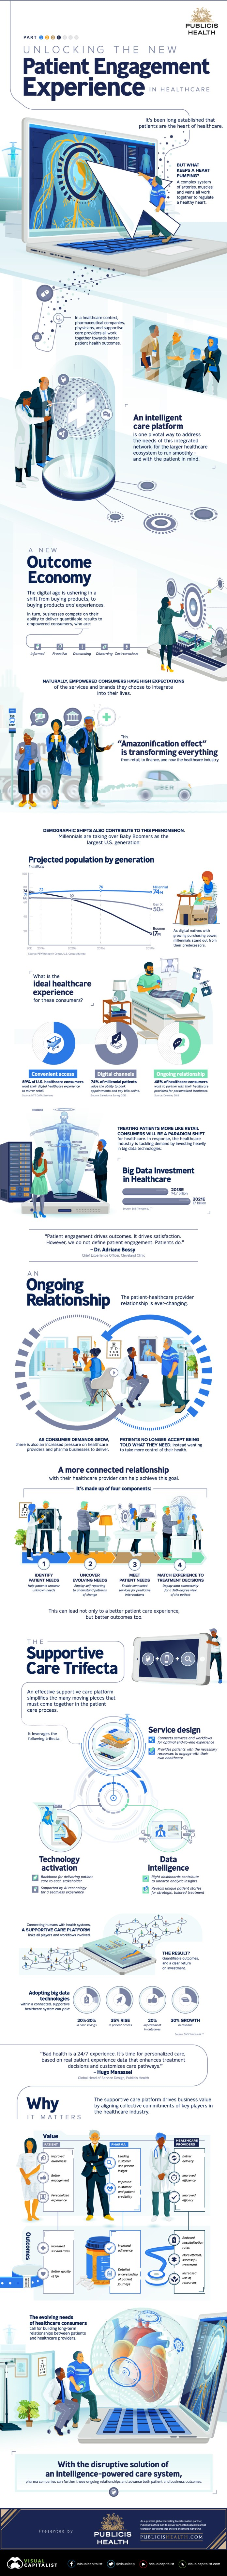 The Amazonification of Healthcare